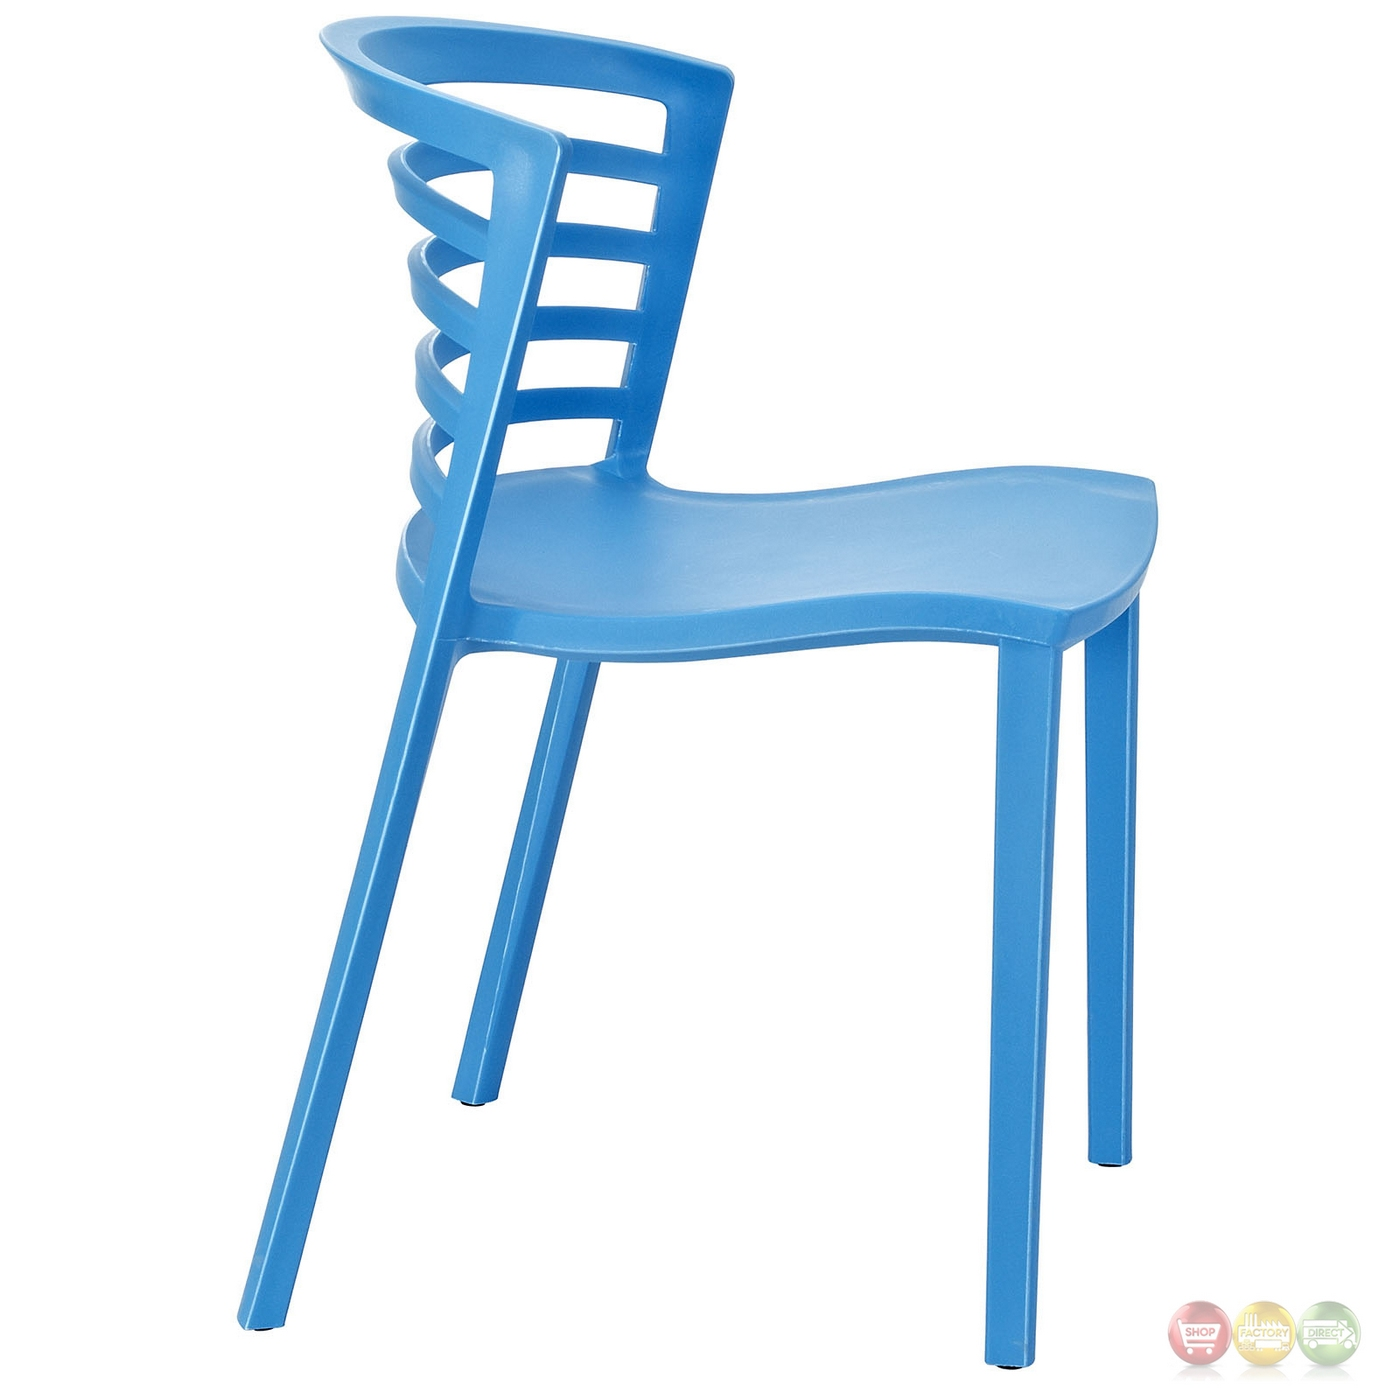 white multi purpose salon chair the unusual company rogate curvy modern molded plastic side blue